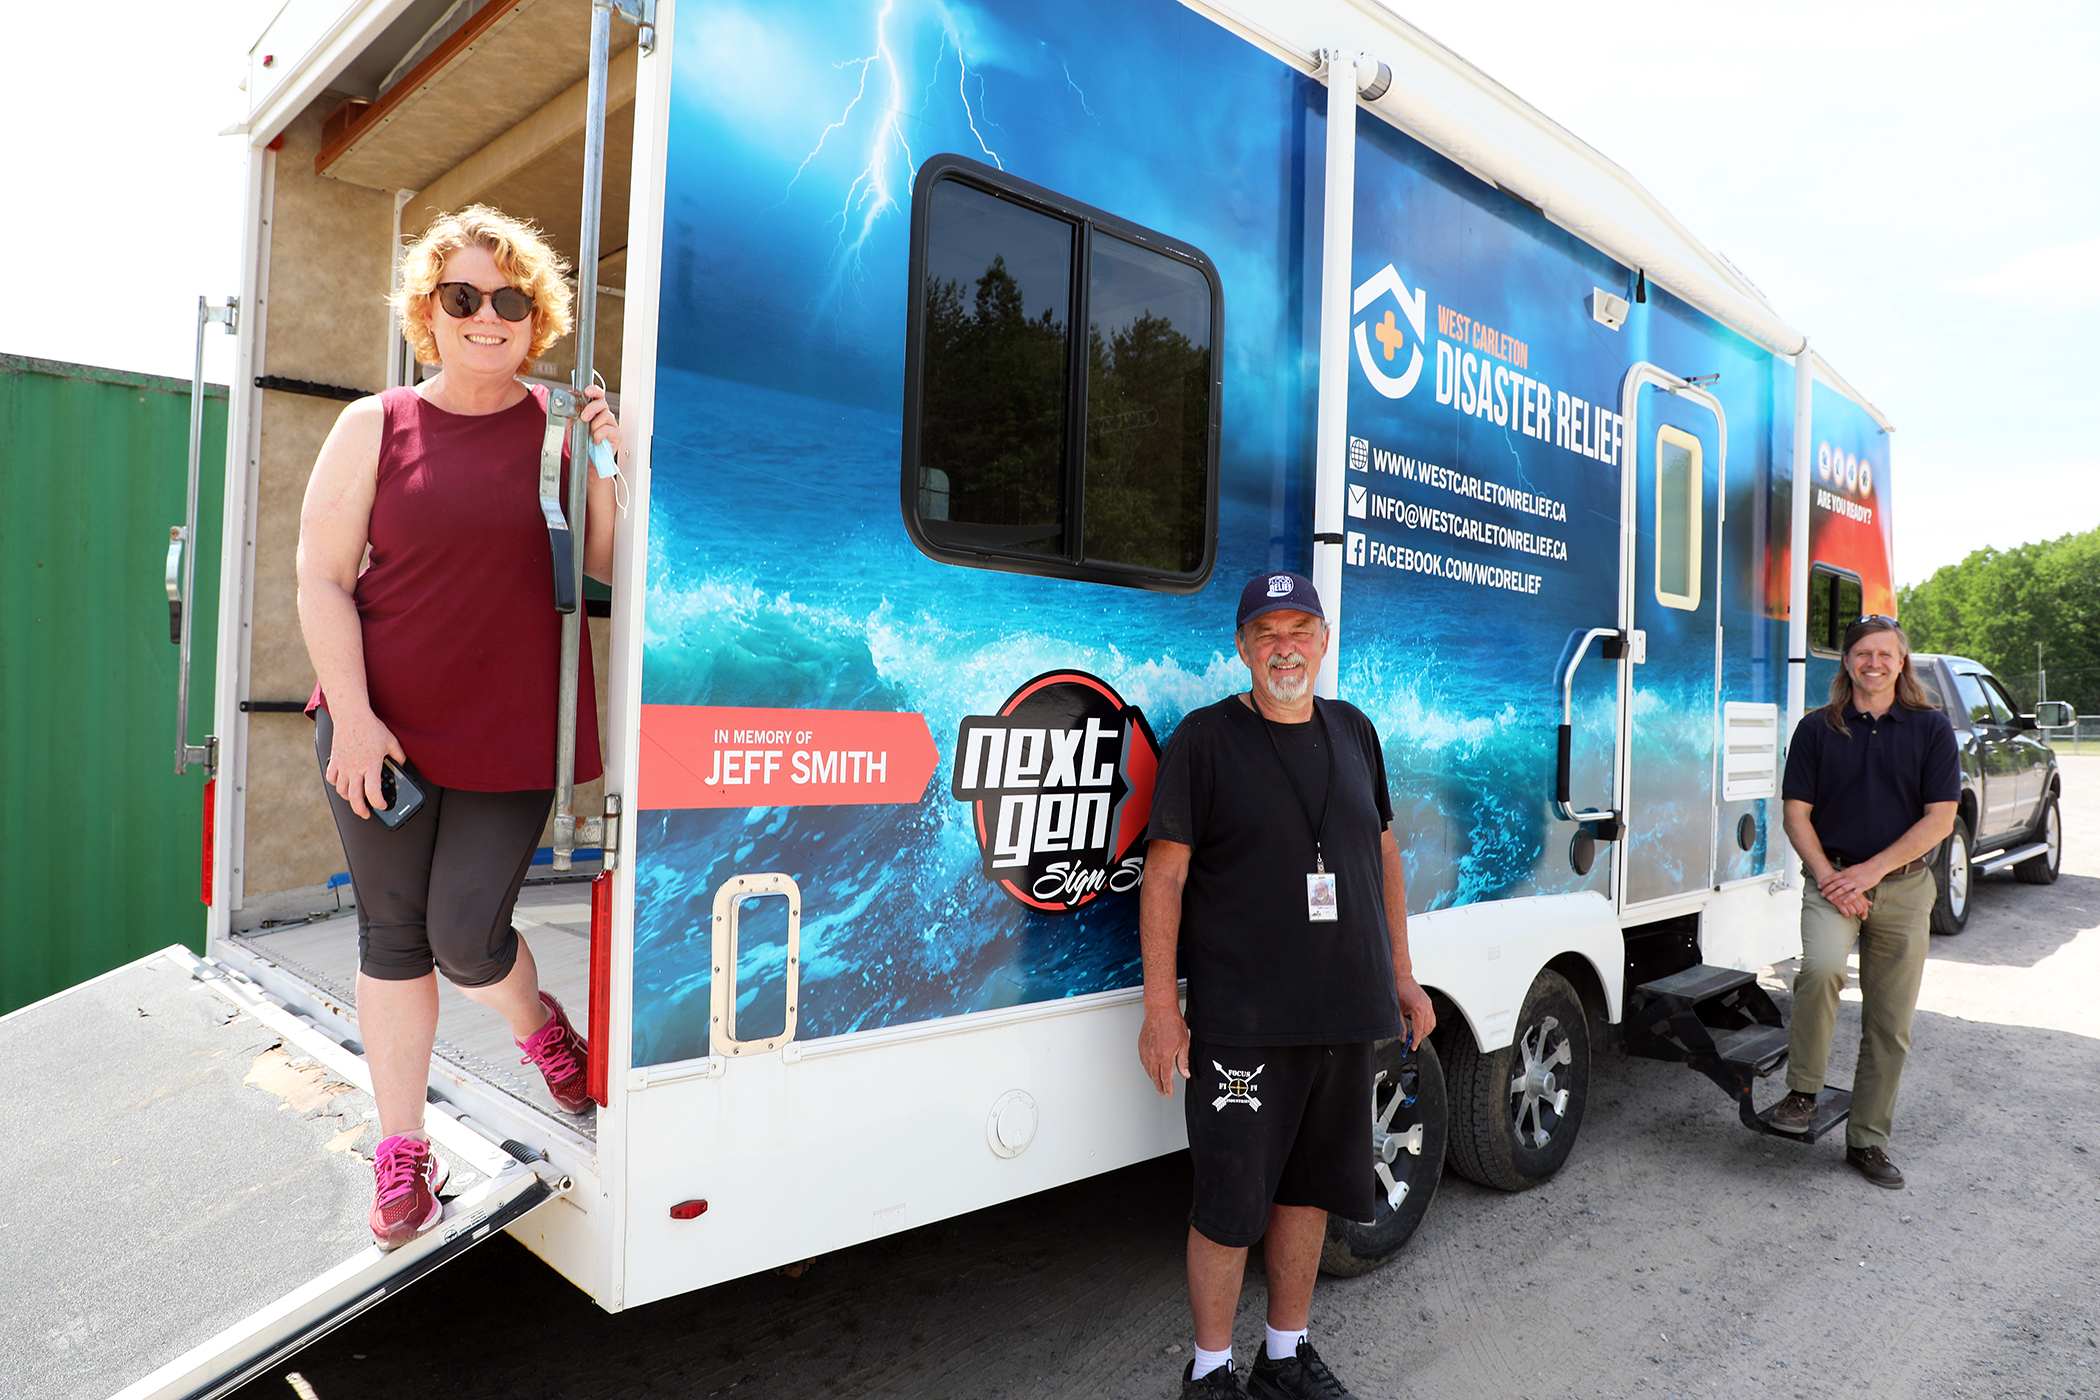 WCDR's new emergency response trailer